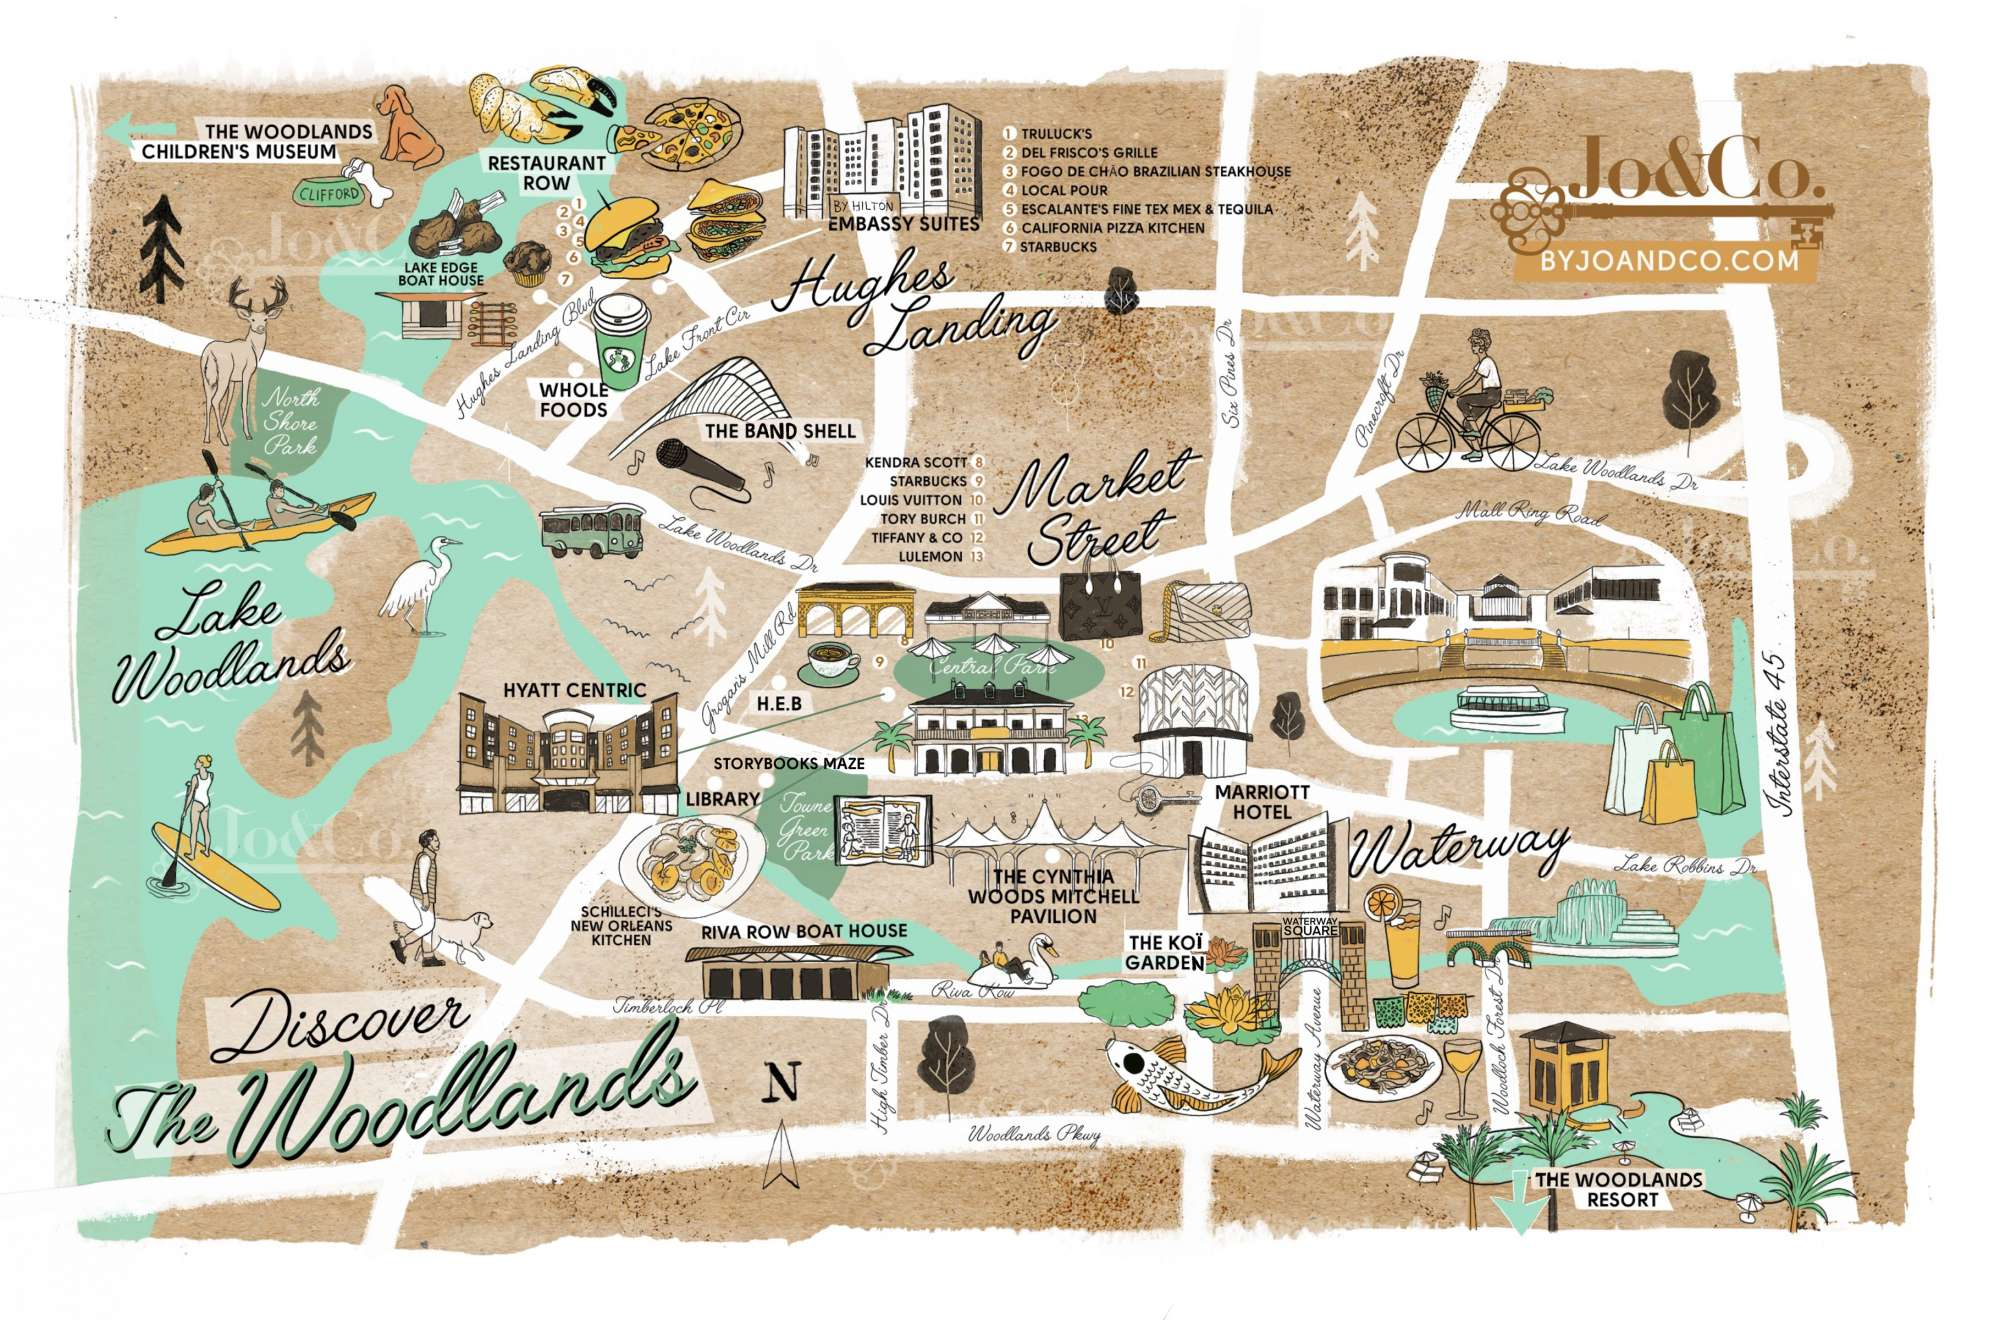 map of the fun stuff to do in the woodlands